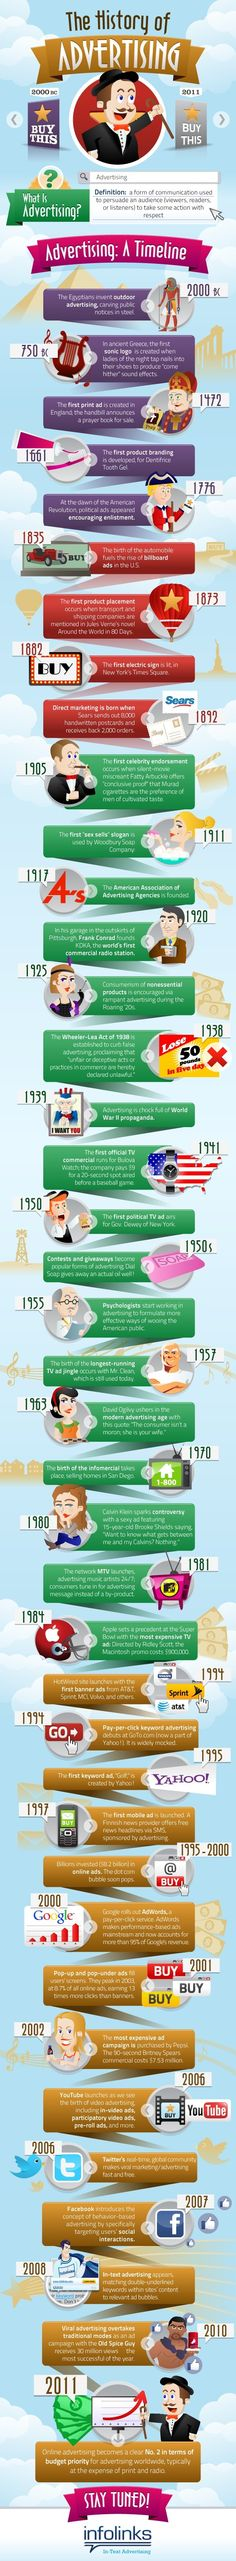 Above #infographic illustrates the evolution of #advertising as well as it gives the ideal definition of advertising.